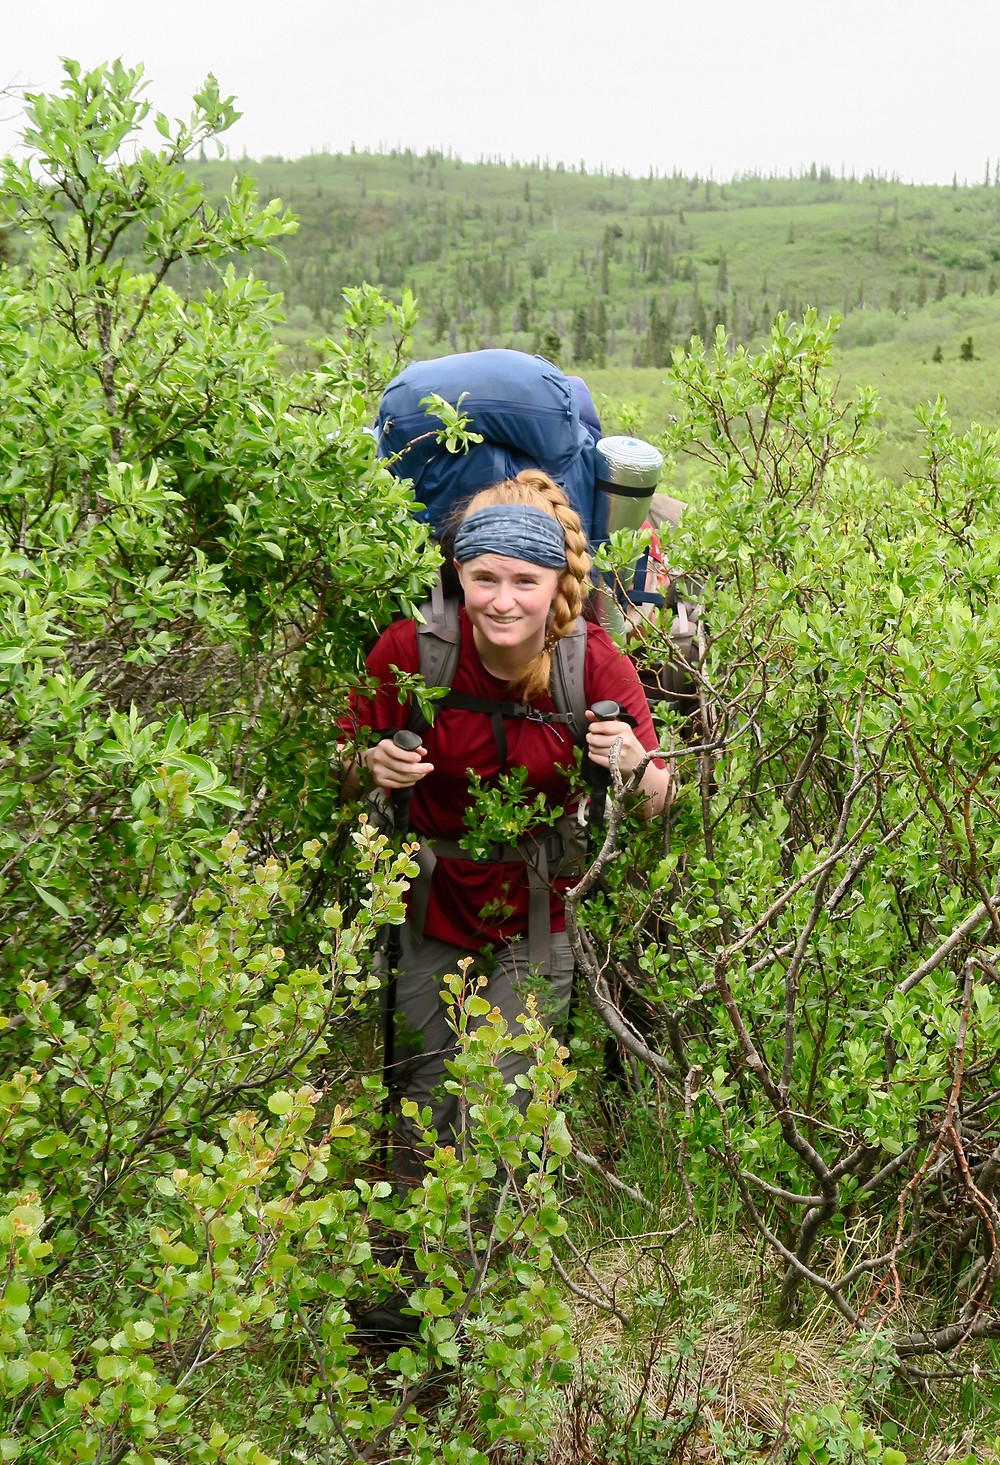 A young white woman wearing a large blue backpack and carrying hiking poles smiles at the camera. She is surrounded by seven foot trees and green plants.